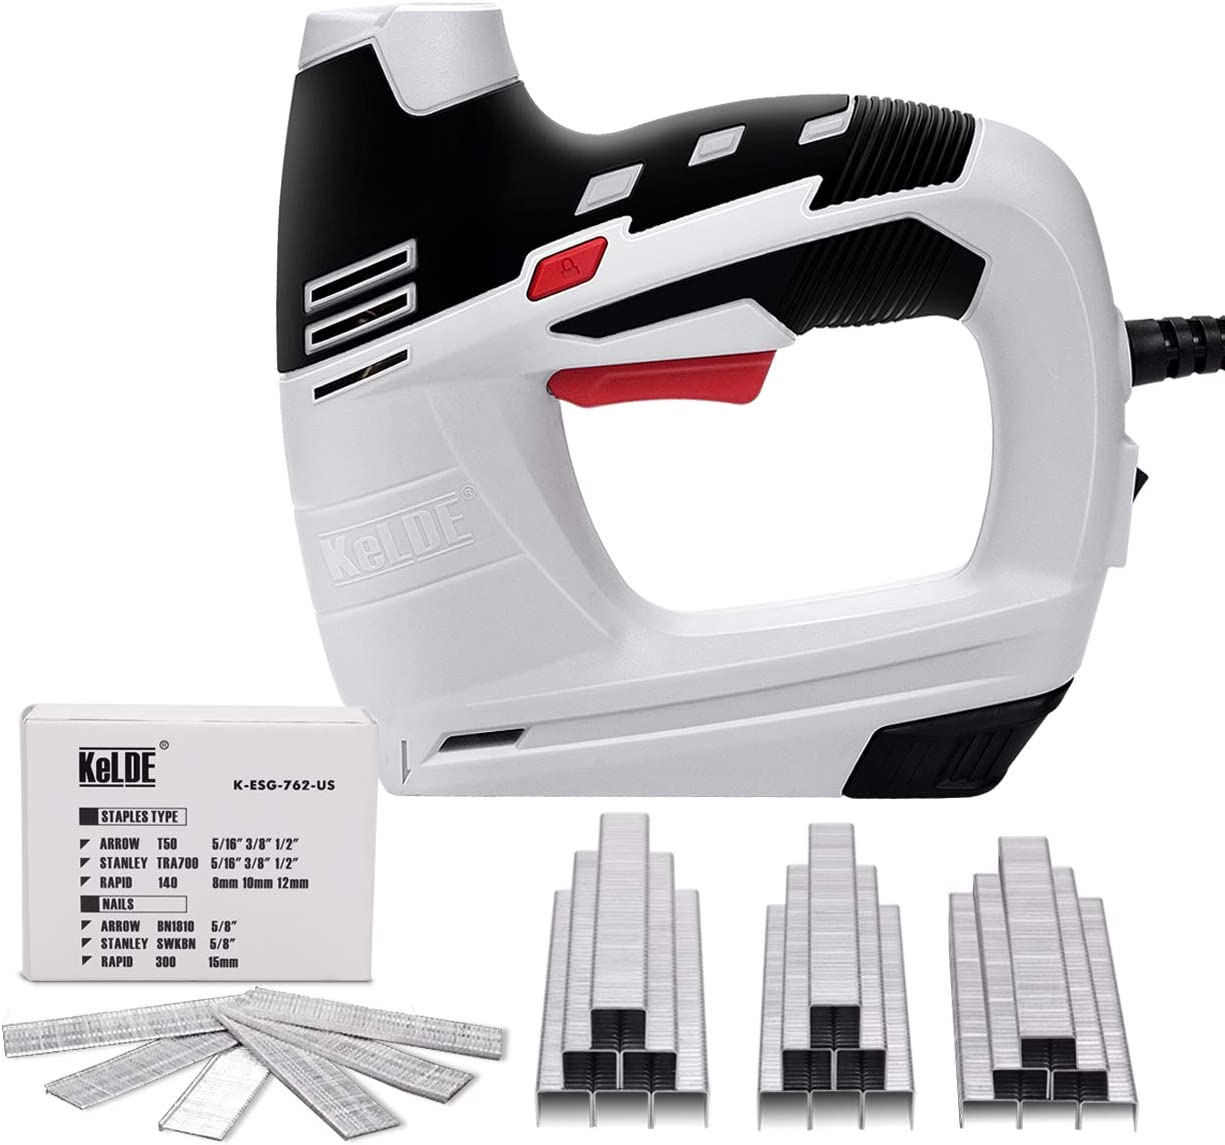 KeLDE Electric Staple Gun